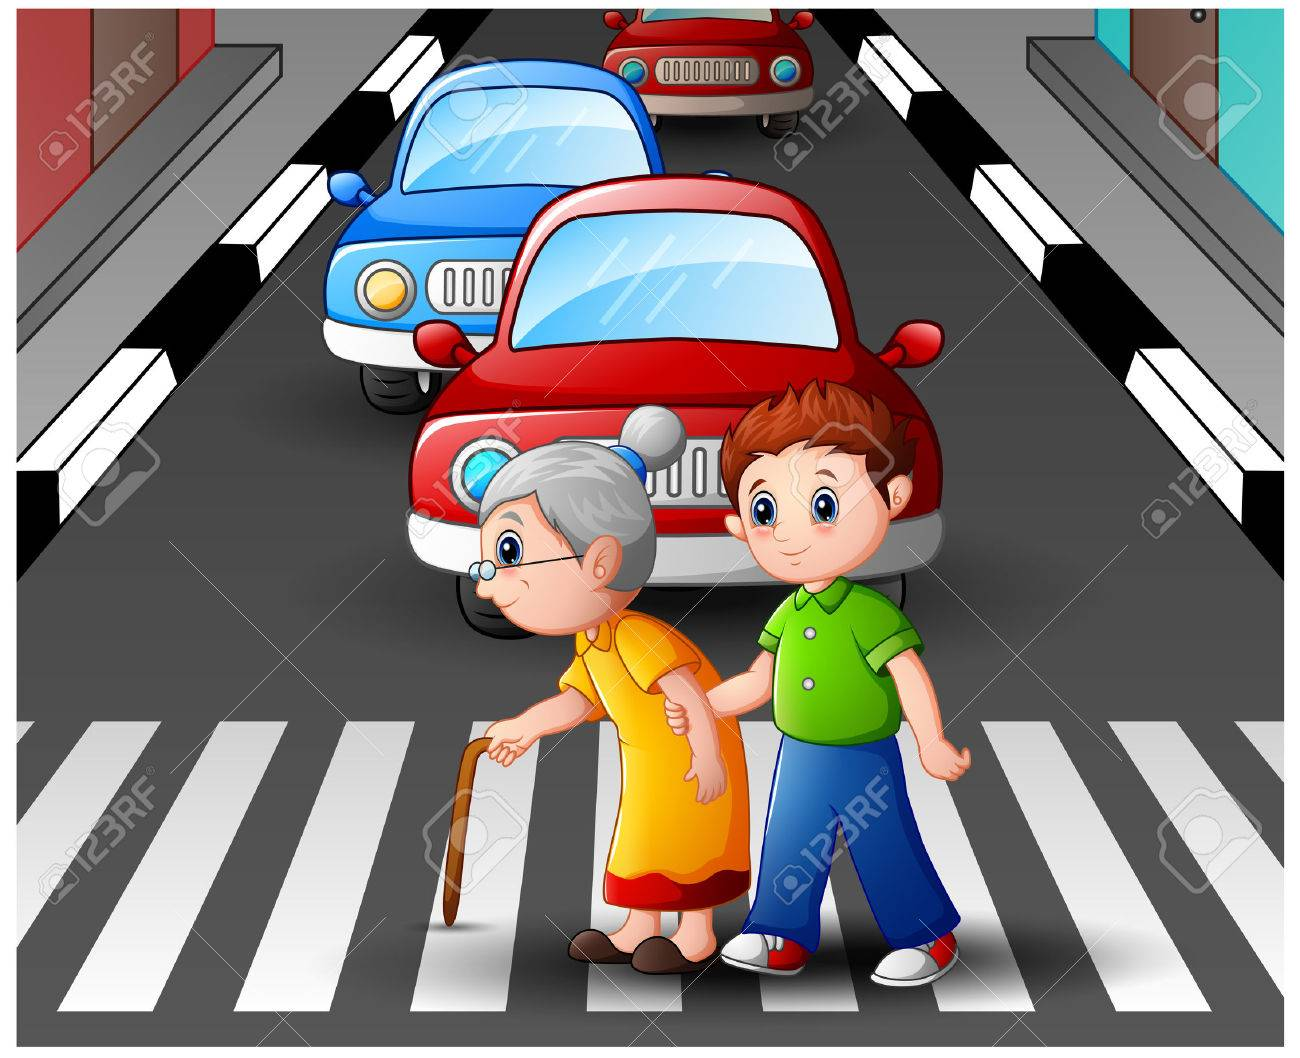 hight resolution of cartoon boy helps grandma crossing the street stock vector 78420171